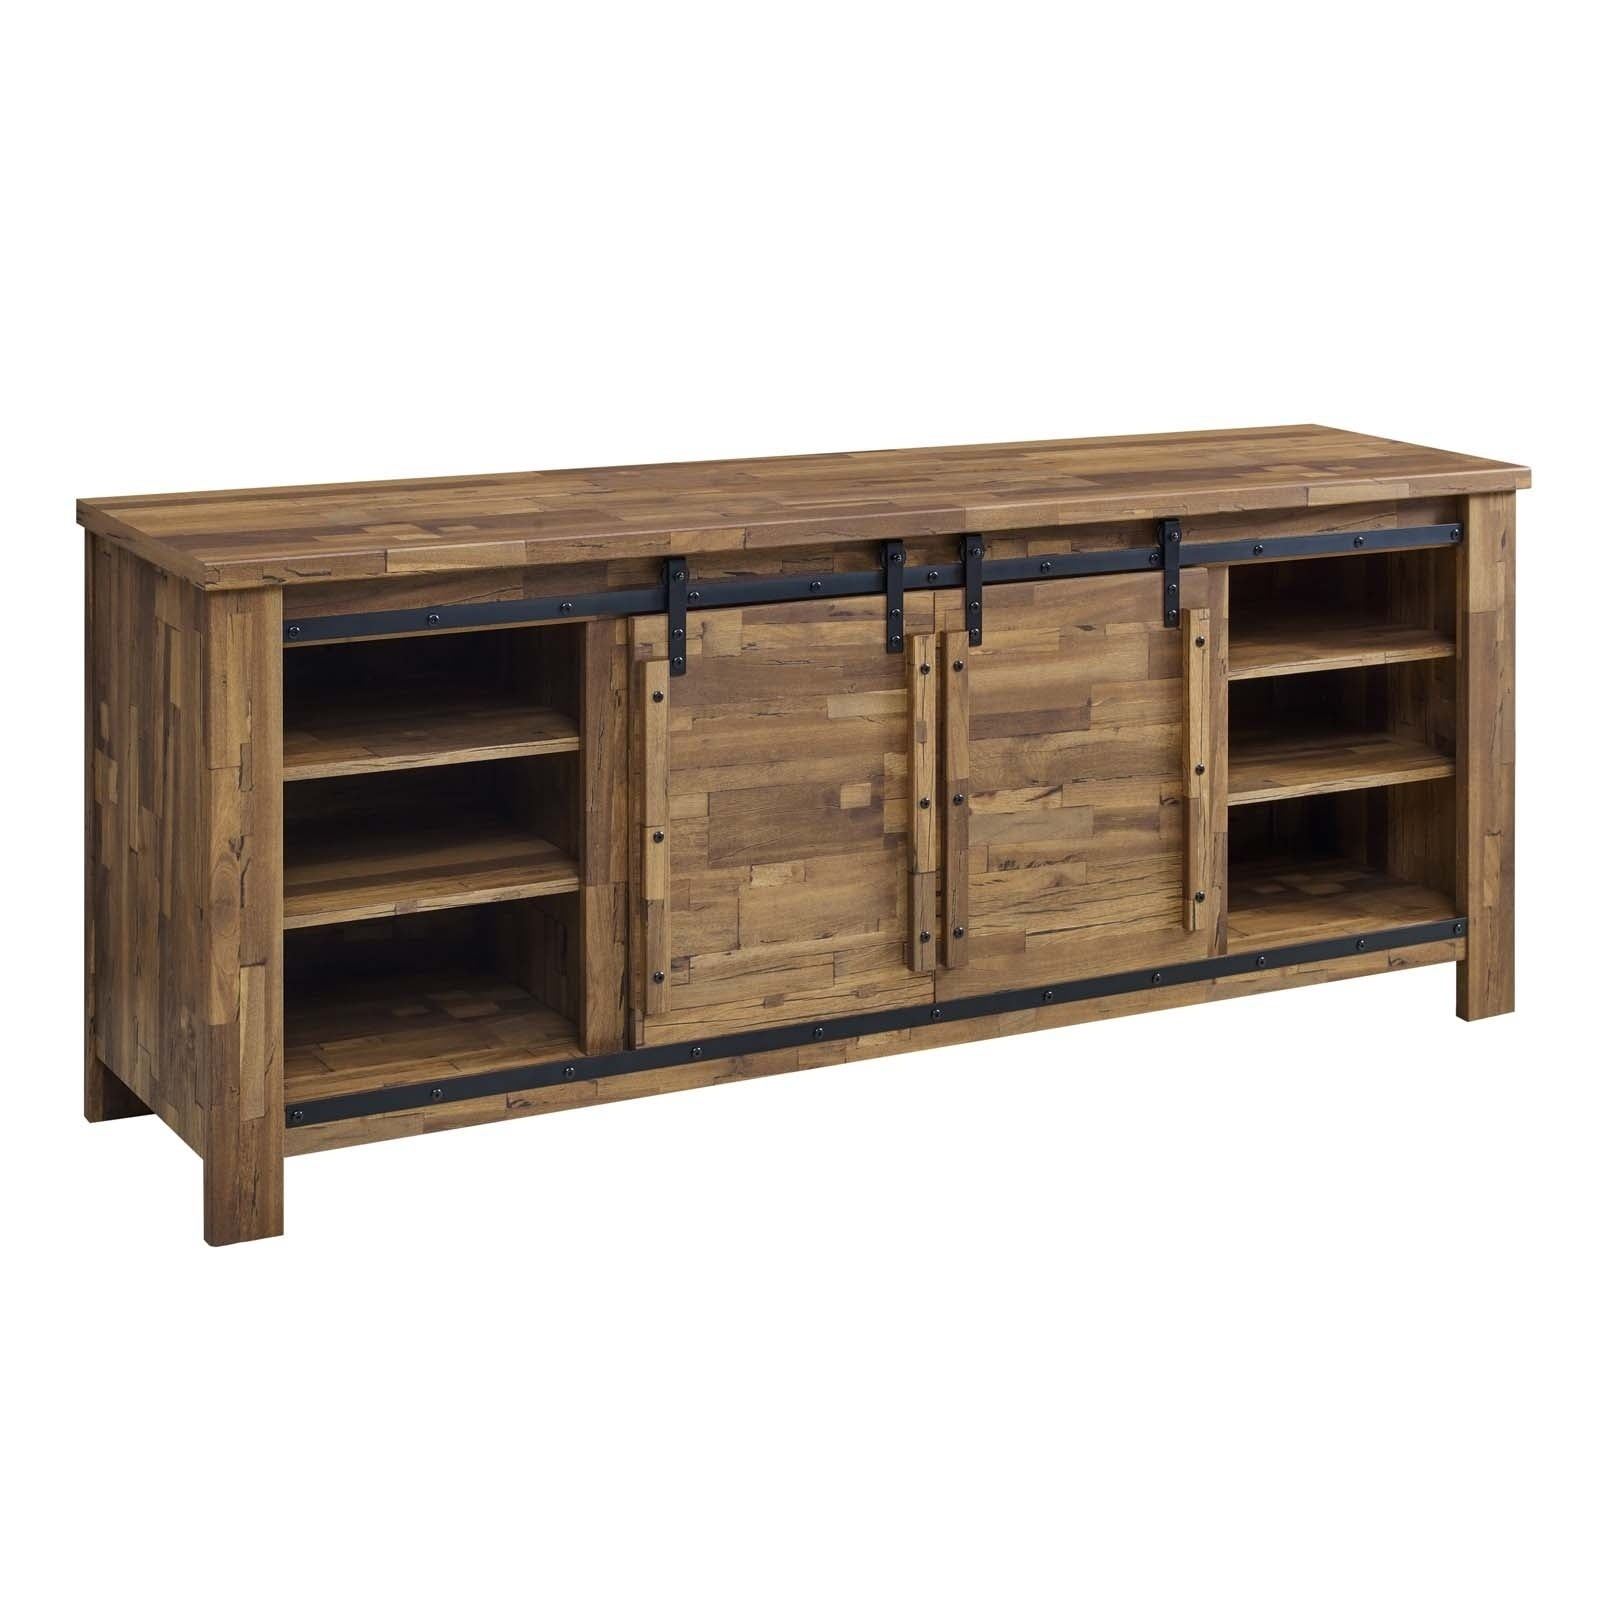 "Cheshire 70"" Rustic Sliding Door Buffet Table Sideboard regarding Rustic Walnut Dining Buffets (Image 9 of 30)"